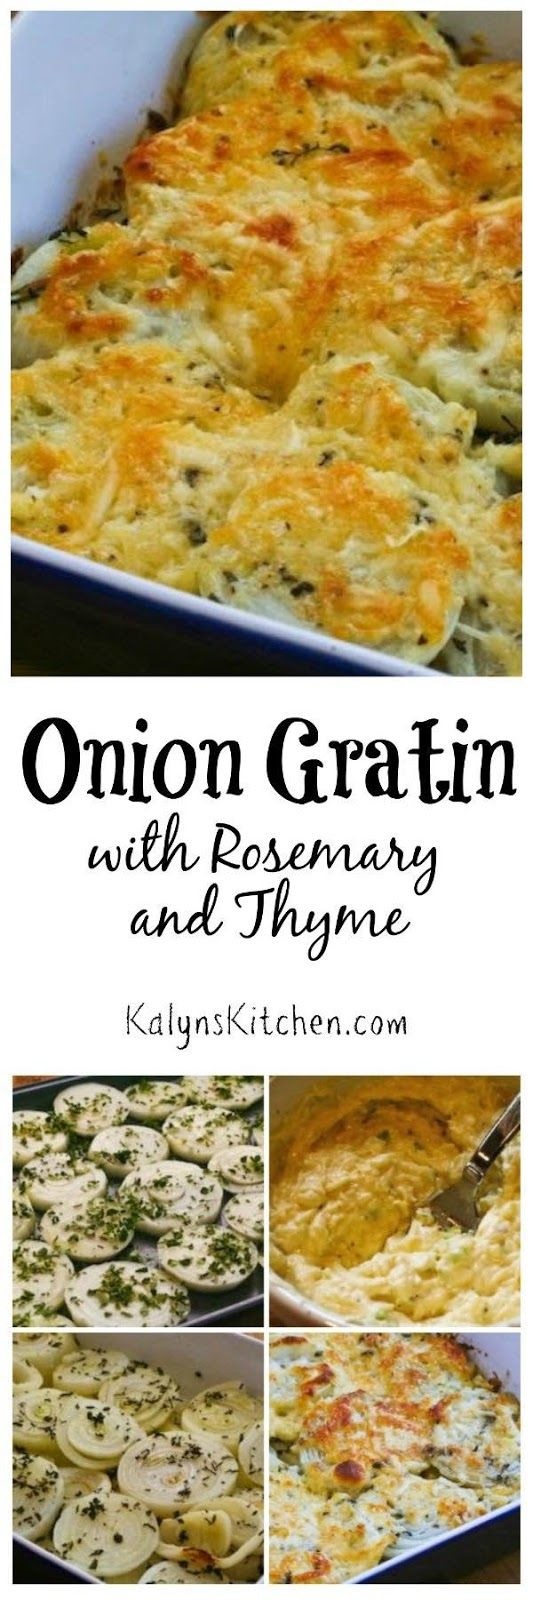 Onion Gratin with Rosemary and Thyme  is a delicious low-carb and gluten-free take on the creamed onions my family always had for holiday meals!   [found on KalynsKitchen.com]